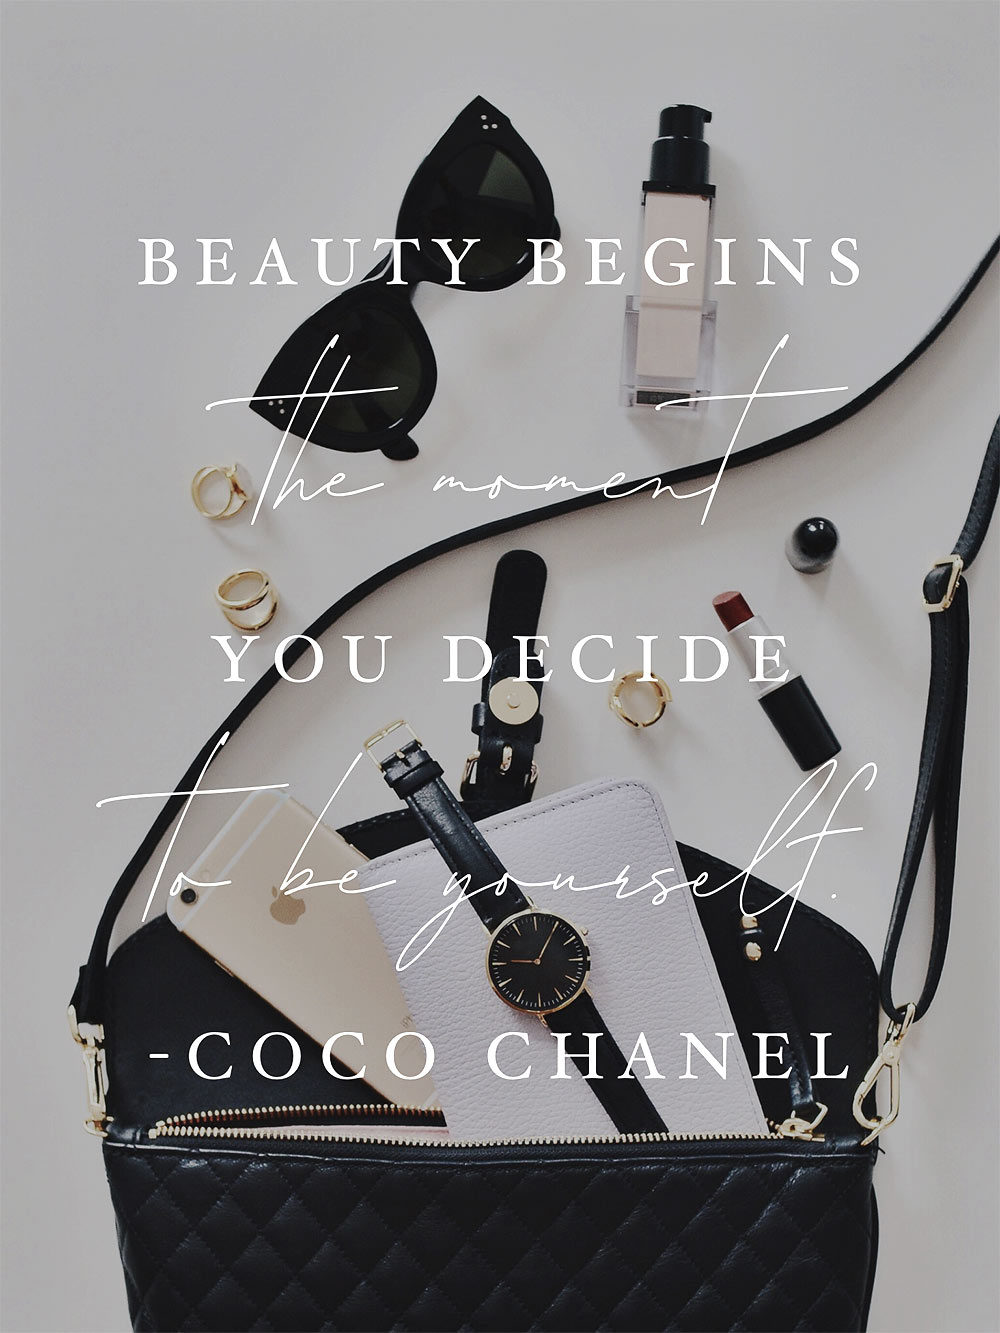 beauty begins coco chanel quote